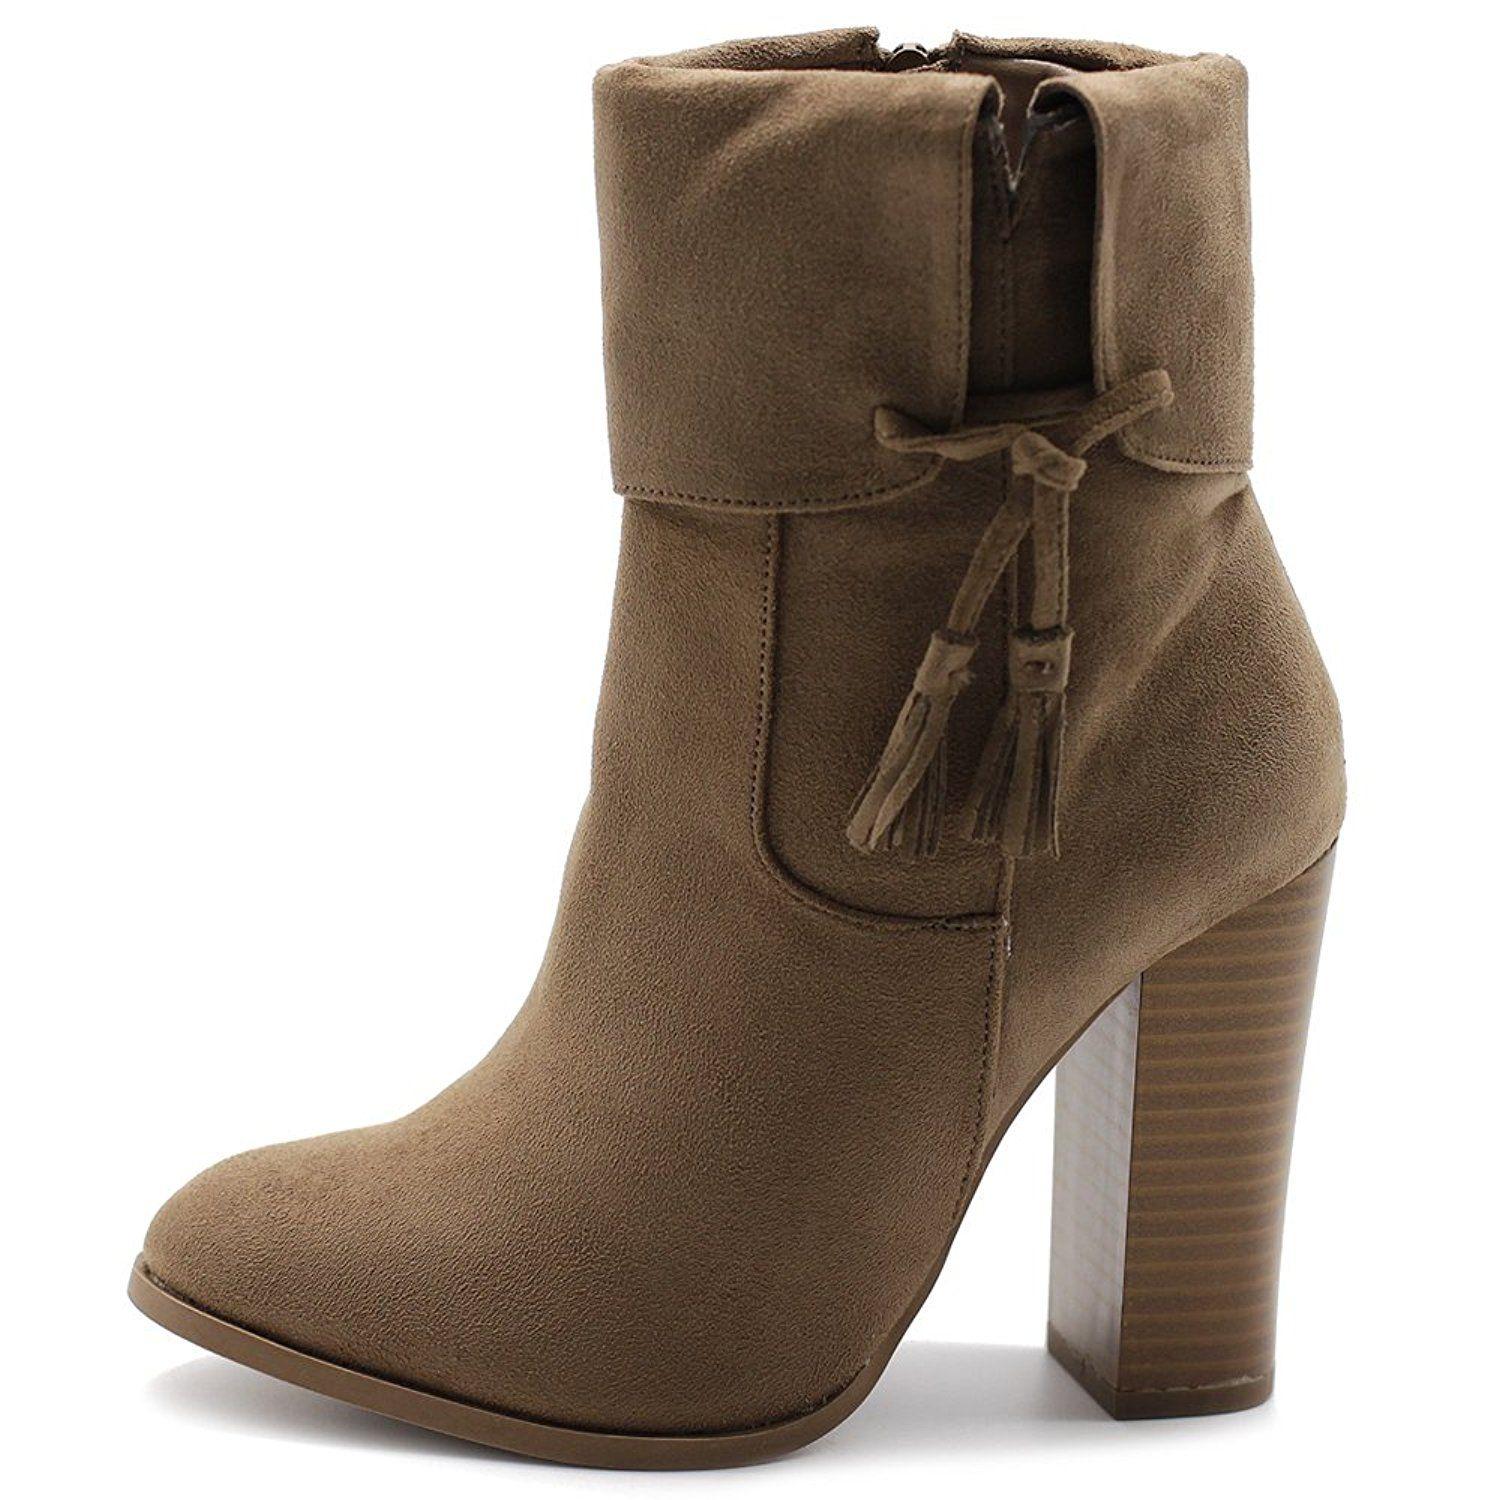 2321e3768e0 Ollio Women s Shoe Faux Suede Back Zip Up Stacked High Heel Tassel Ankle  Boots   To view further for this item